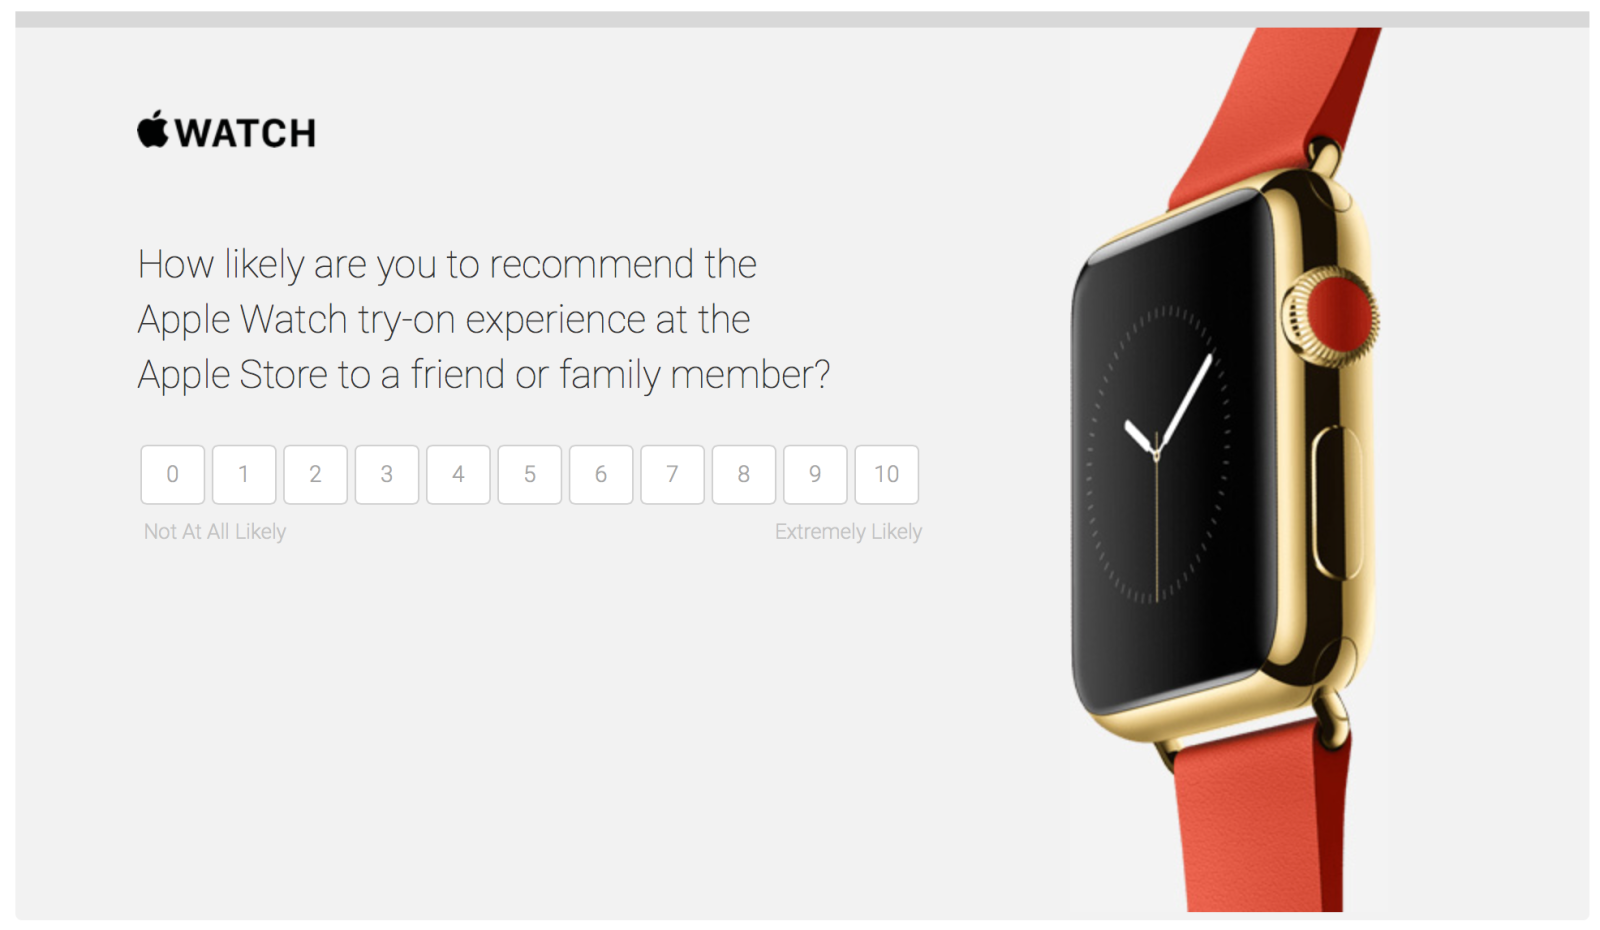 what is the fastest way to get customer feedback